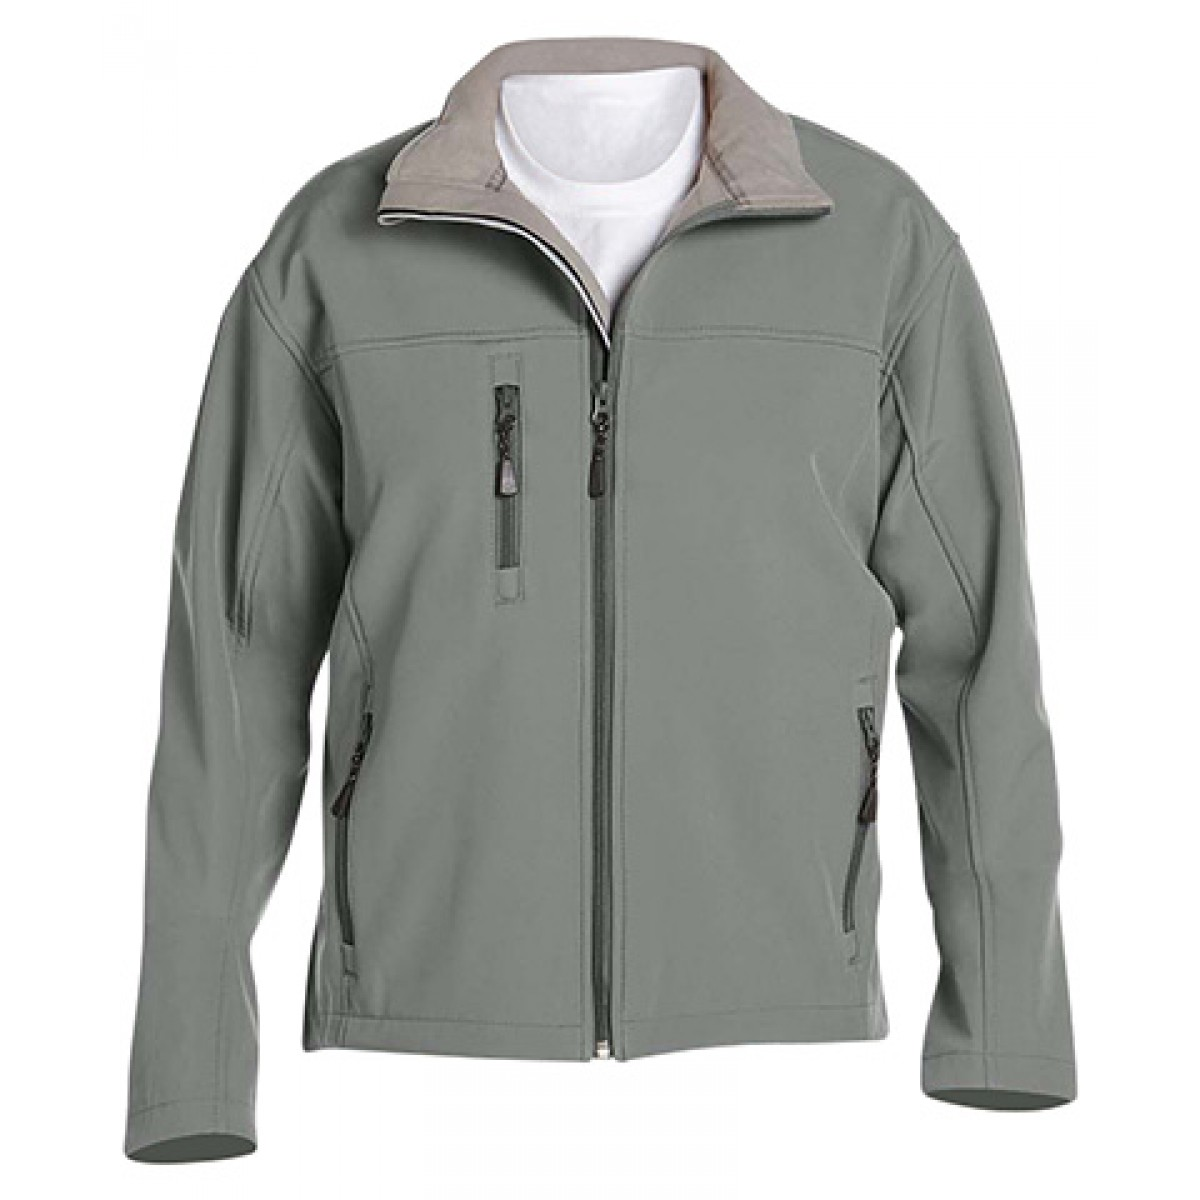 Men's Soft Shell Jacket-Charocal-M